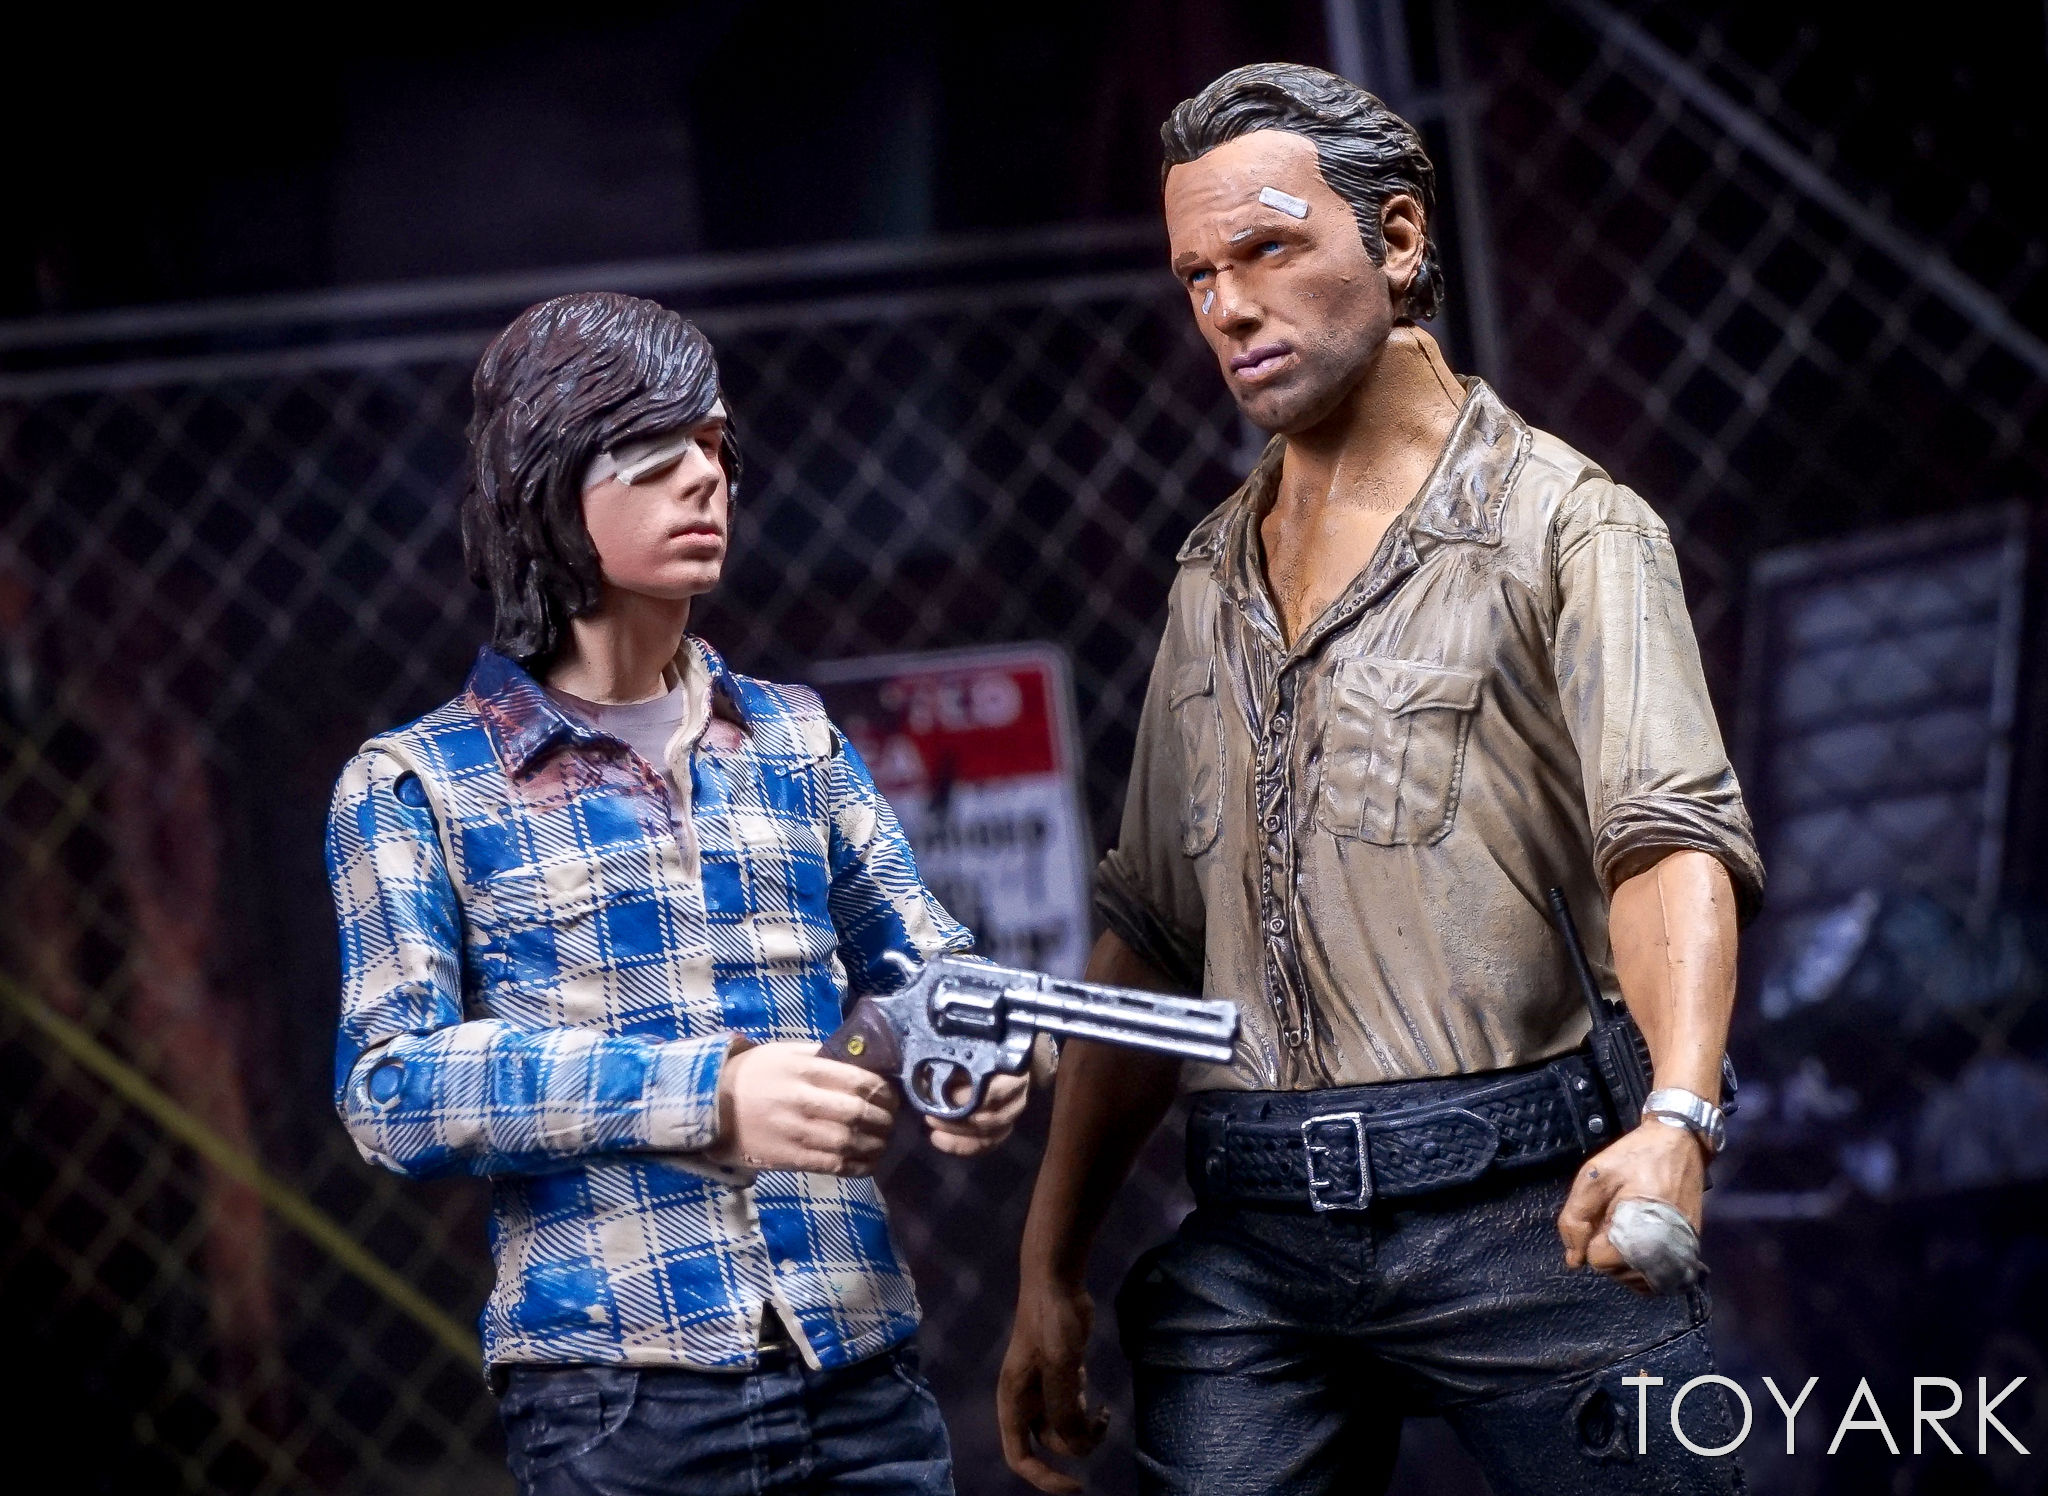 http://news.toyark.com/wp-content/uploads/sites/4/2017/03/McFarlane-Color-Tops-Walking-Dead-Carl-Grimes-039.jpg